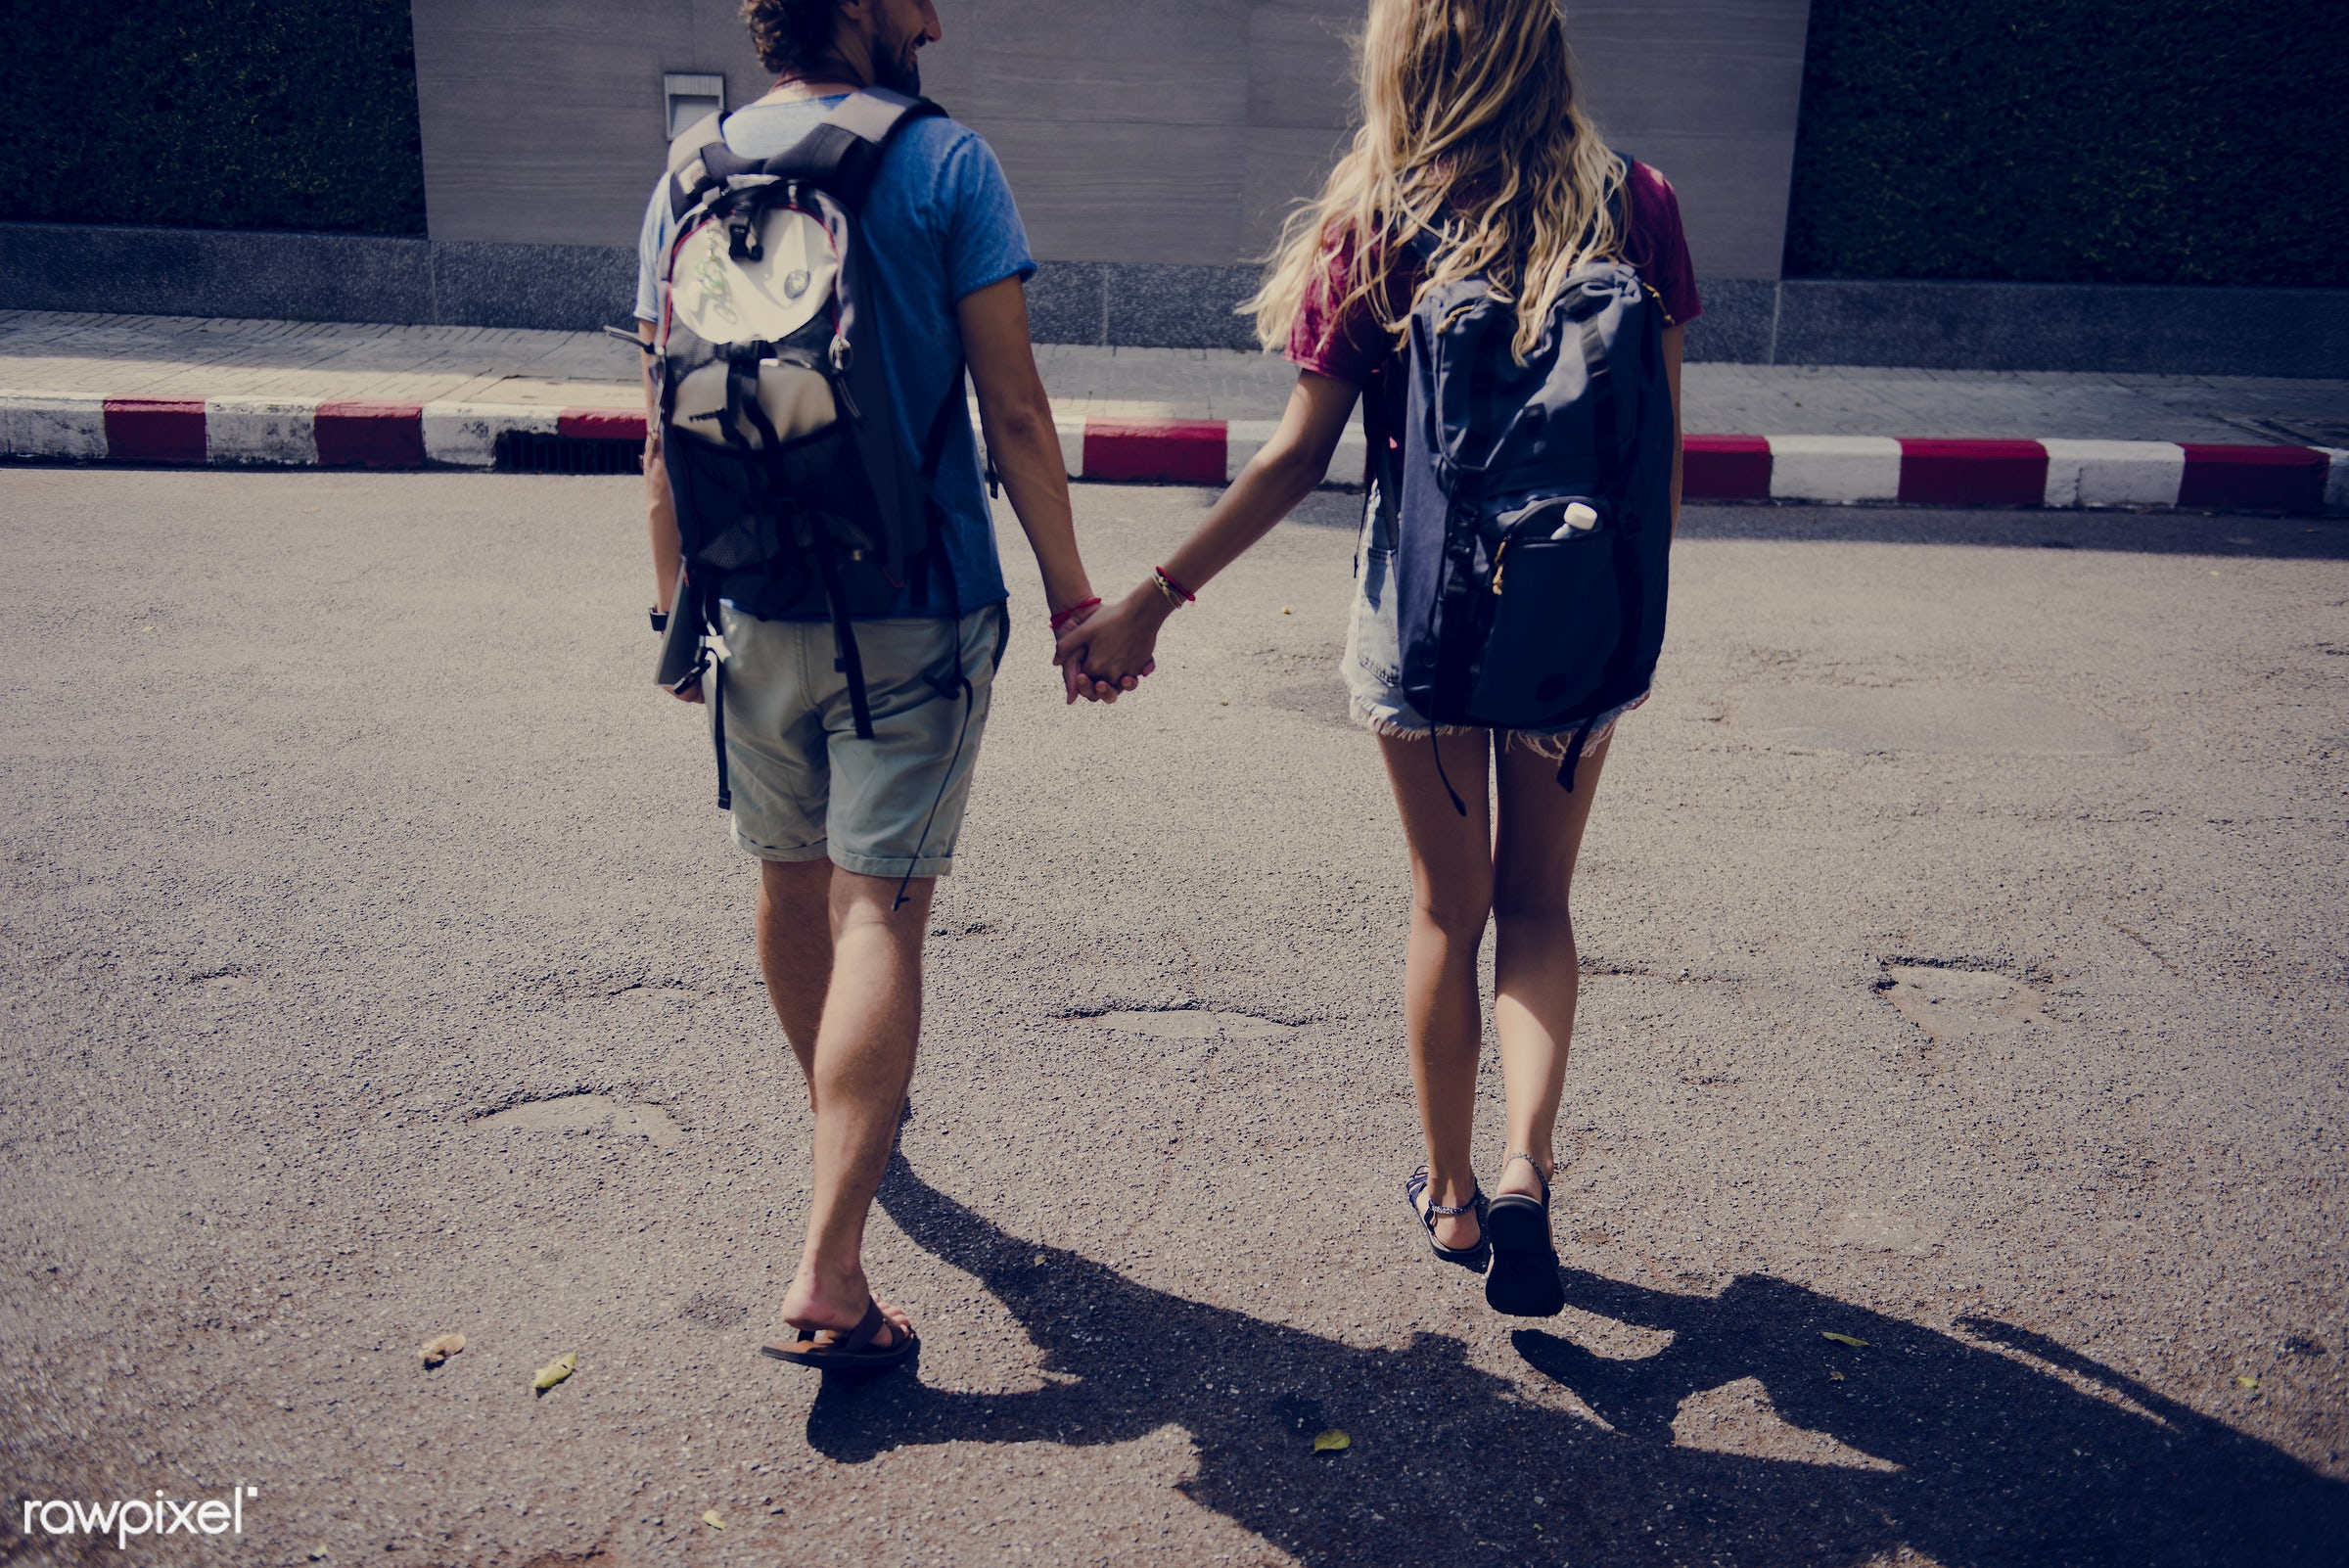 holding, backpackers, travel, people, together, wanderlust, city, woman, partner, connection, destination, holiday, vacation...